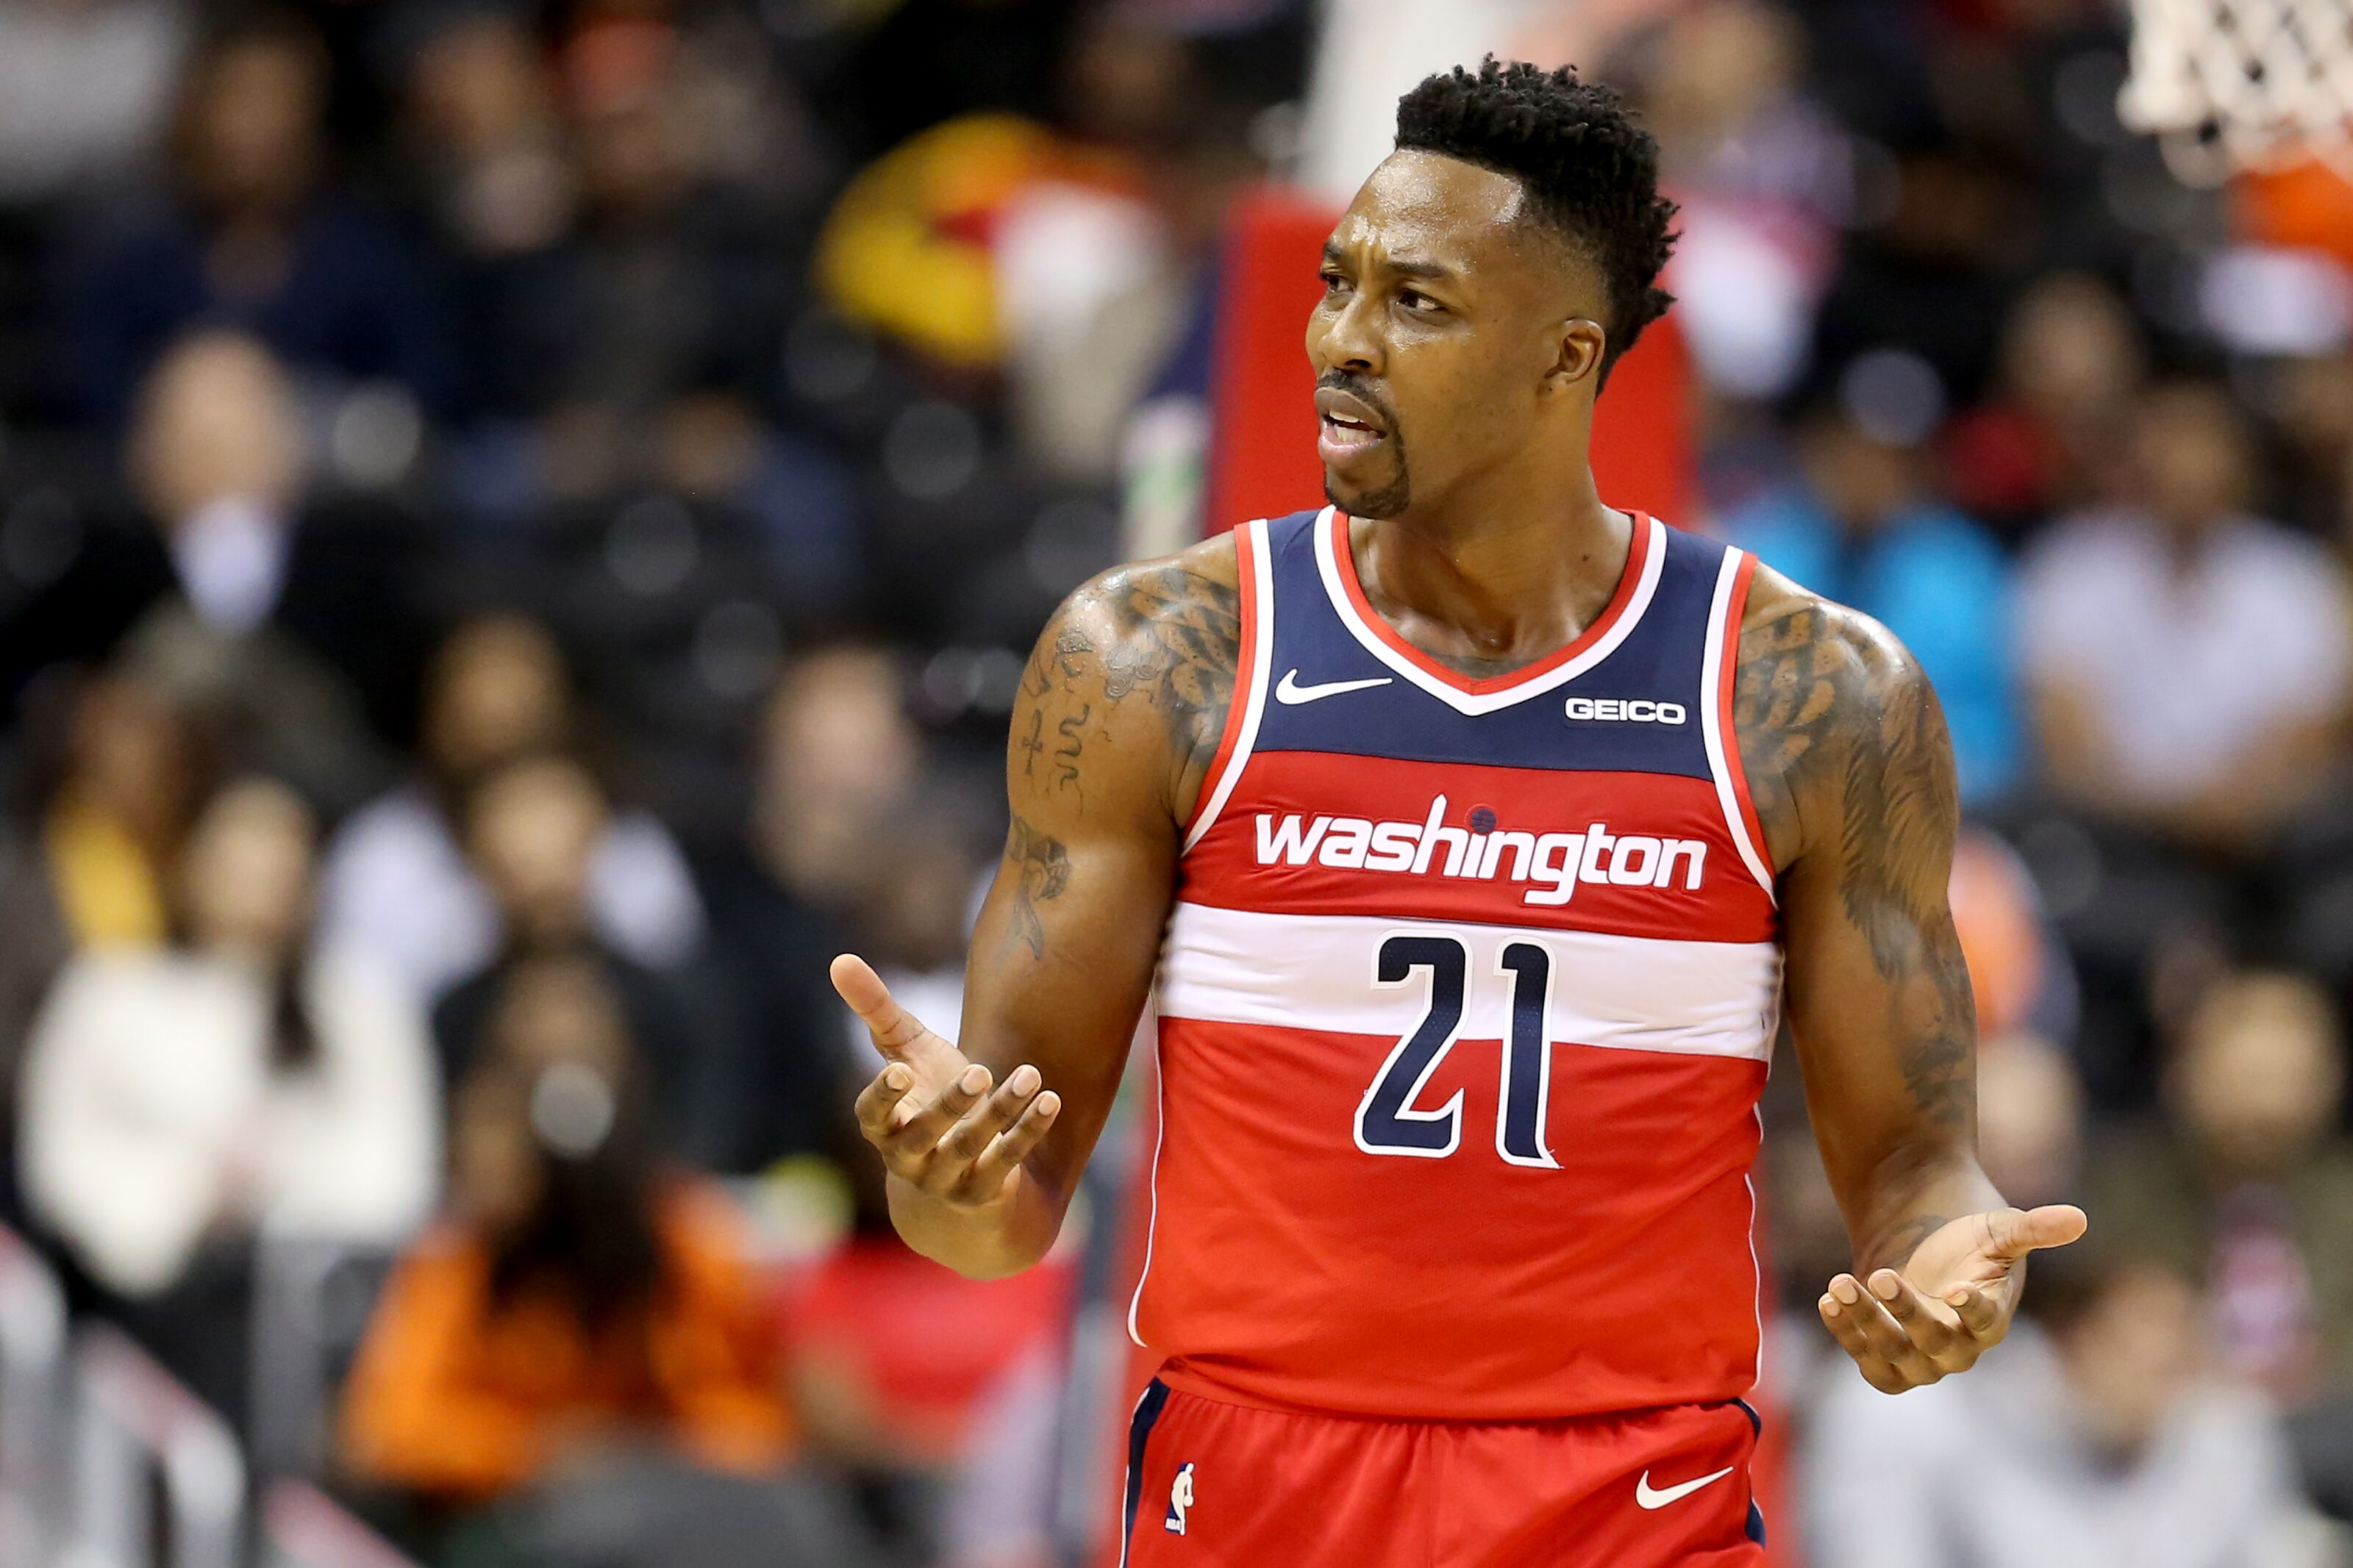 Los Angeles Lakers: Dwight Howard could revive his career in LA